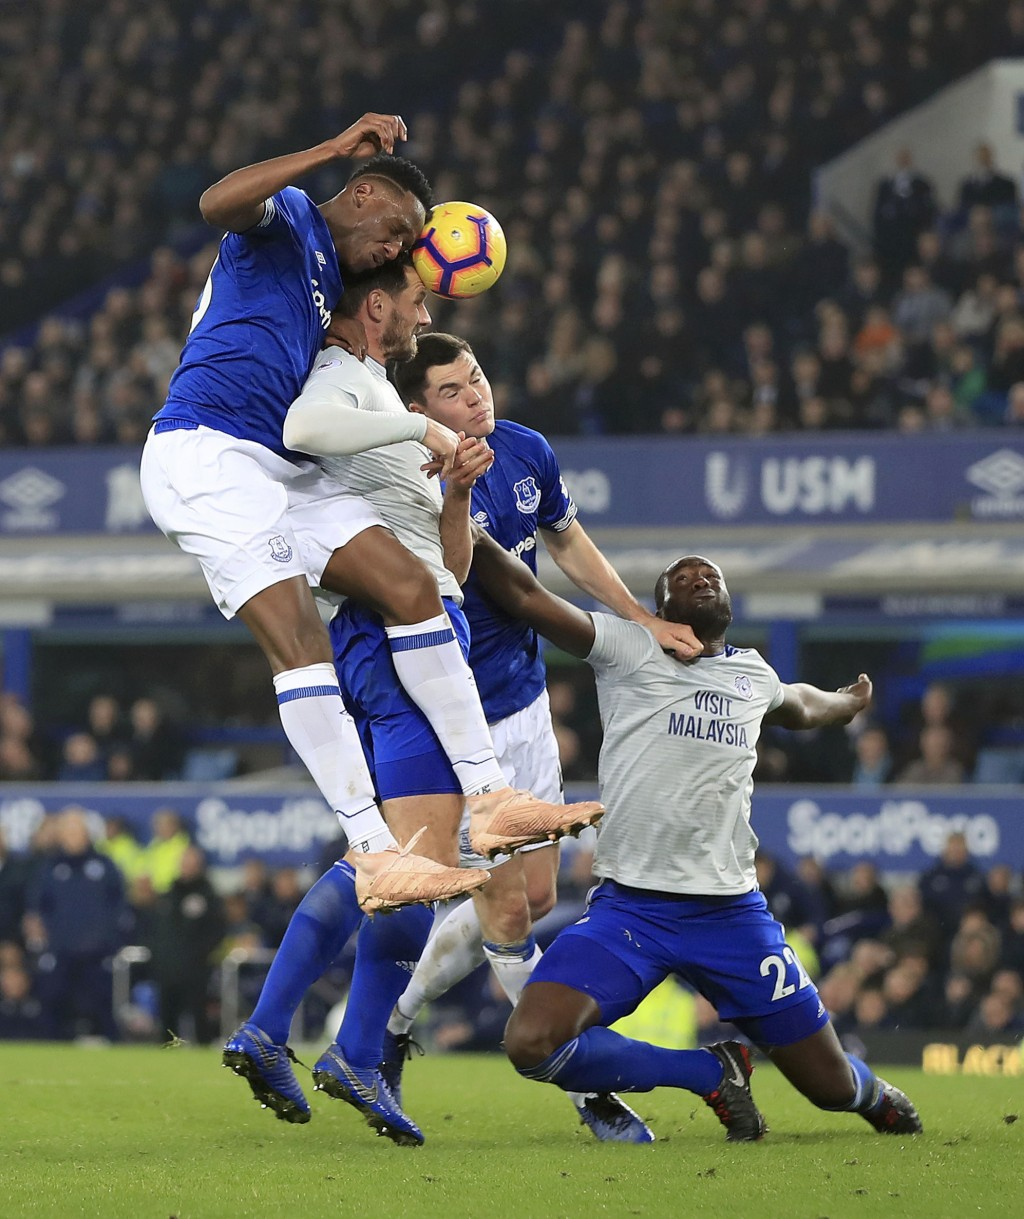 Everton's Yerry Mina, left, and Michael Keane, second from right, vie for the bal with Cardiff City's Sean Morrison, second from left, and Bruno Ecuel...